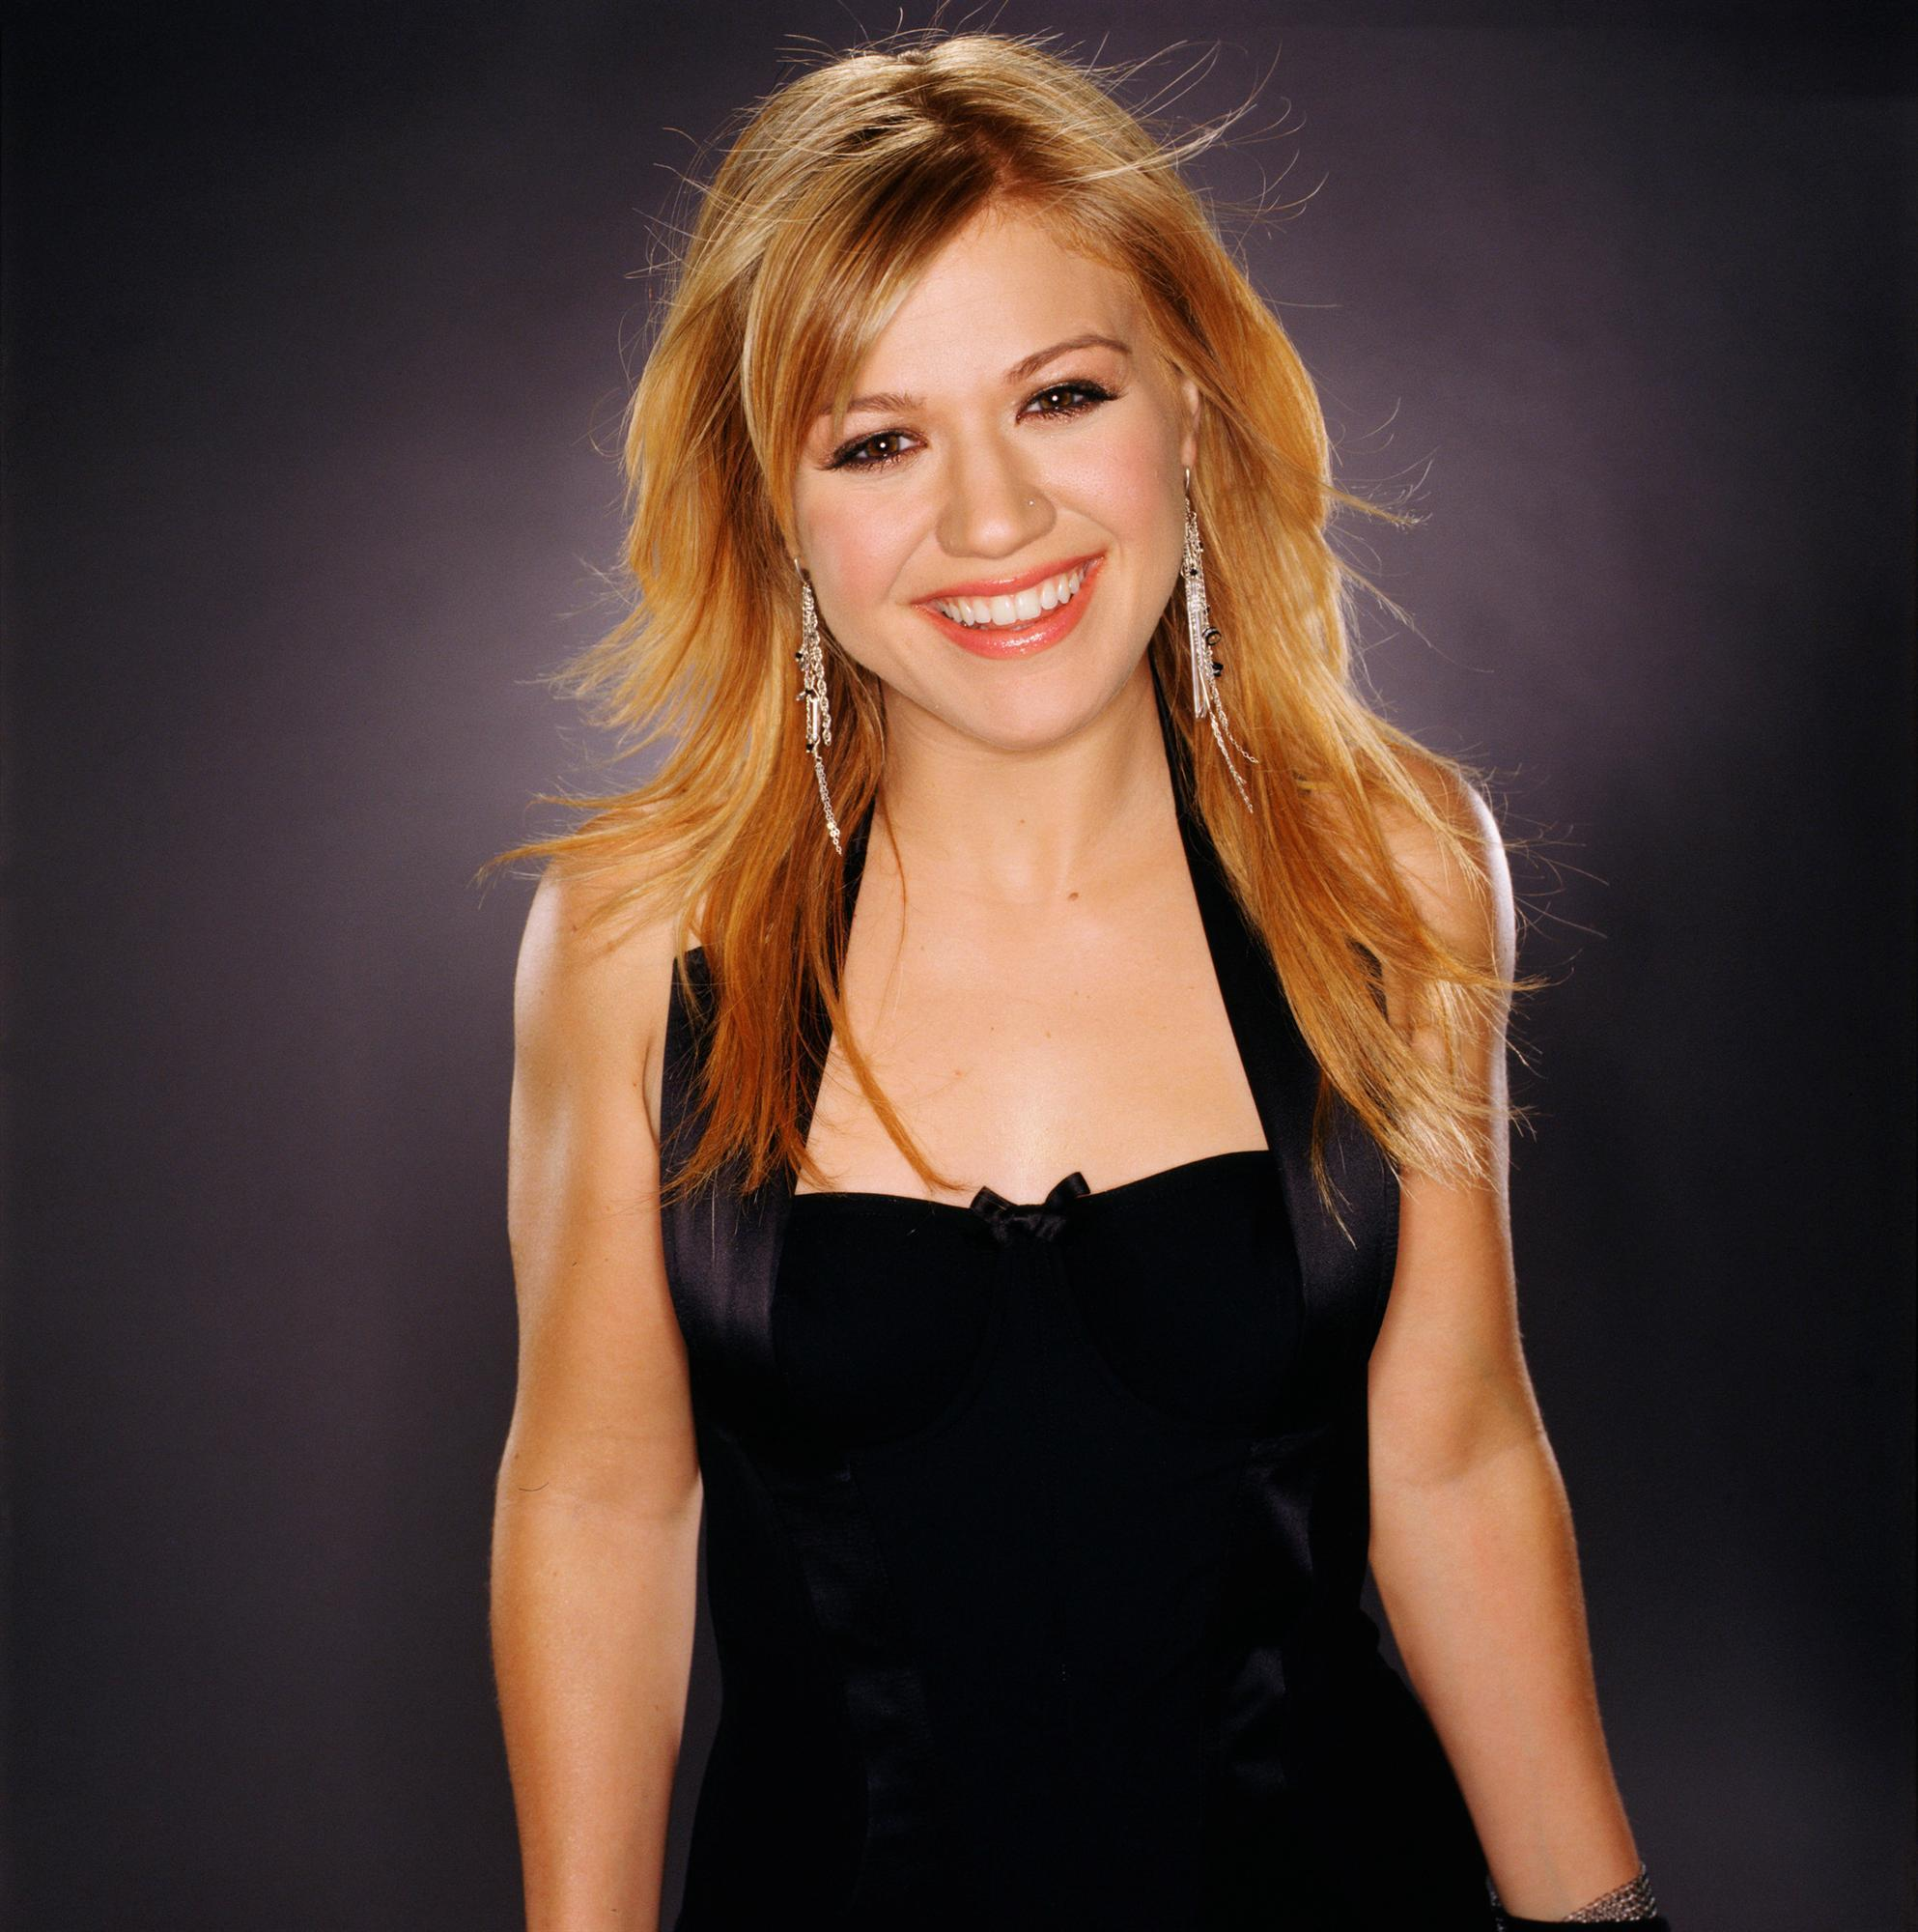 Kelly - KELLY CLARKSON Photo (1418916) - Fanpop